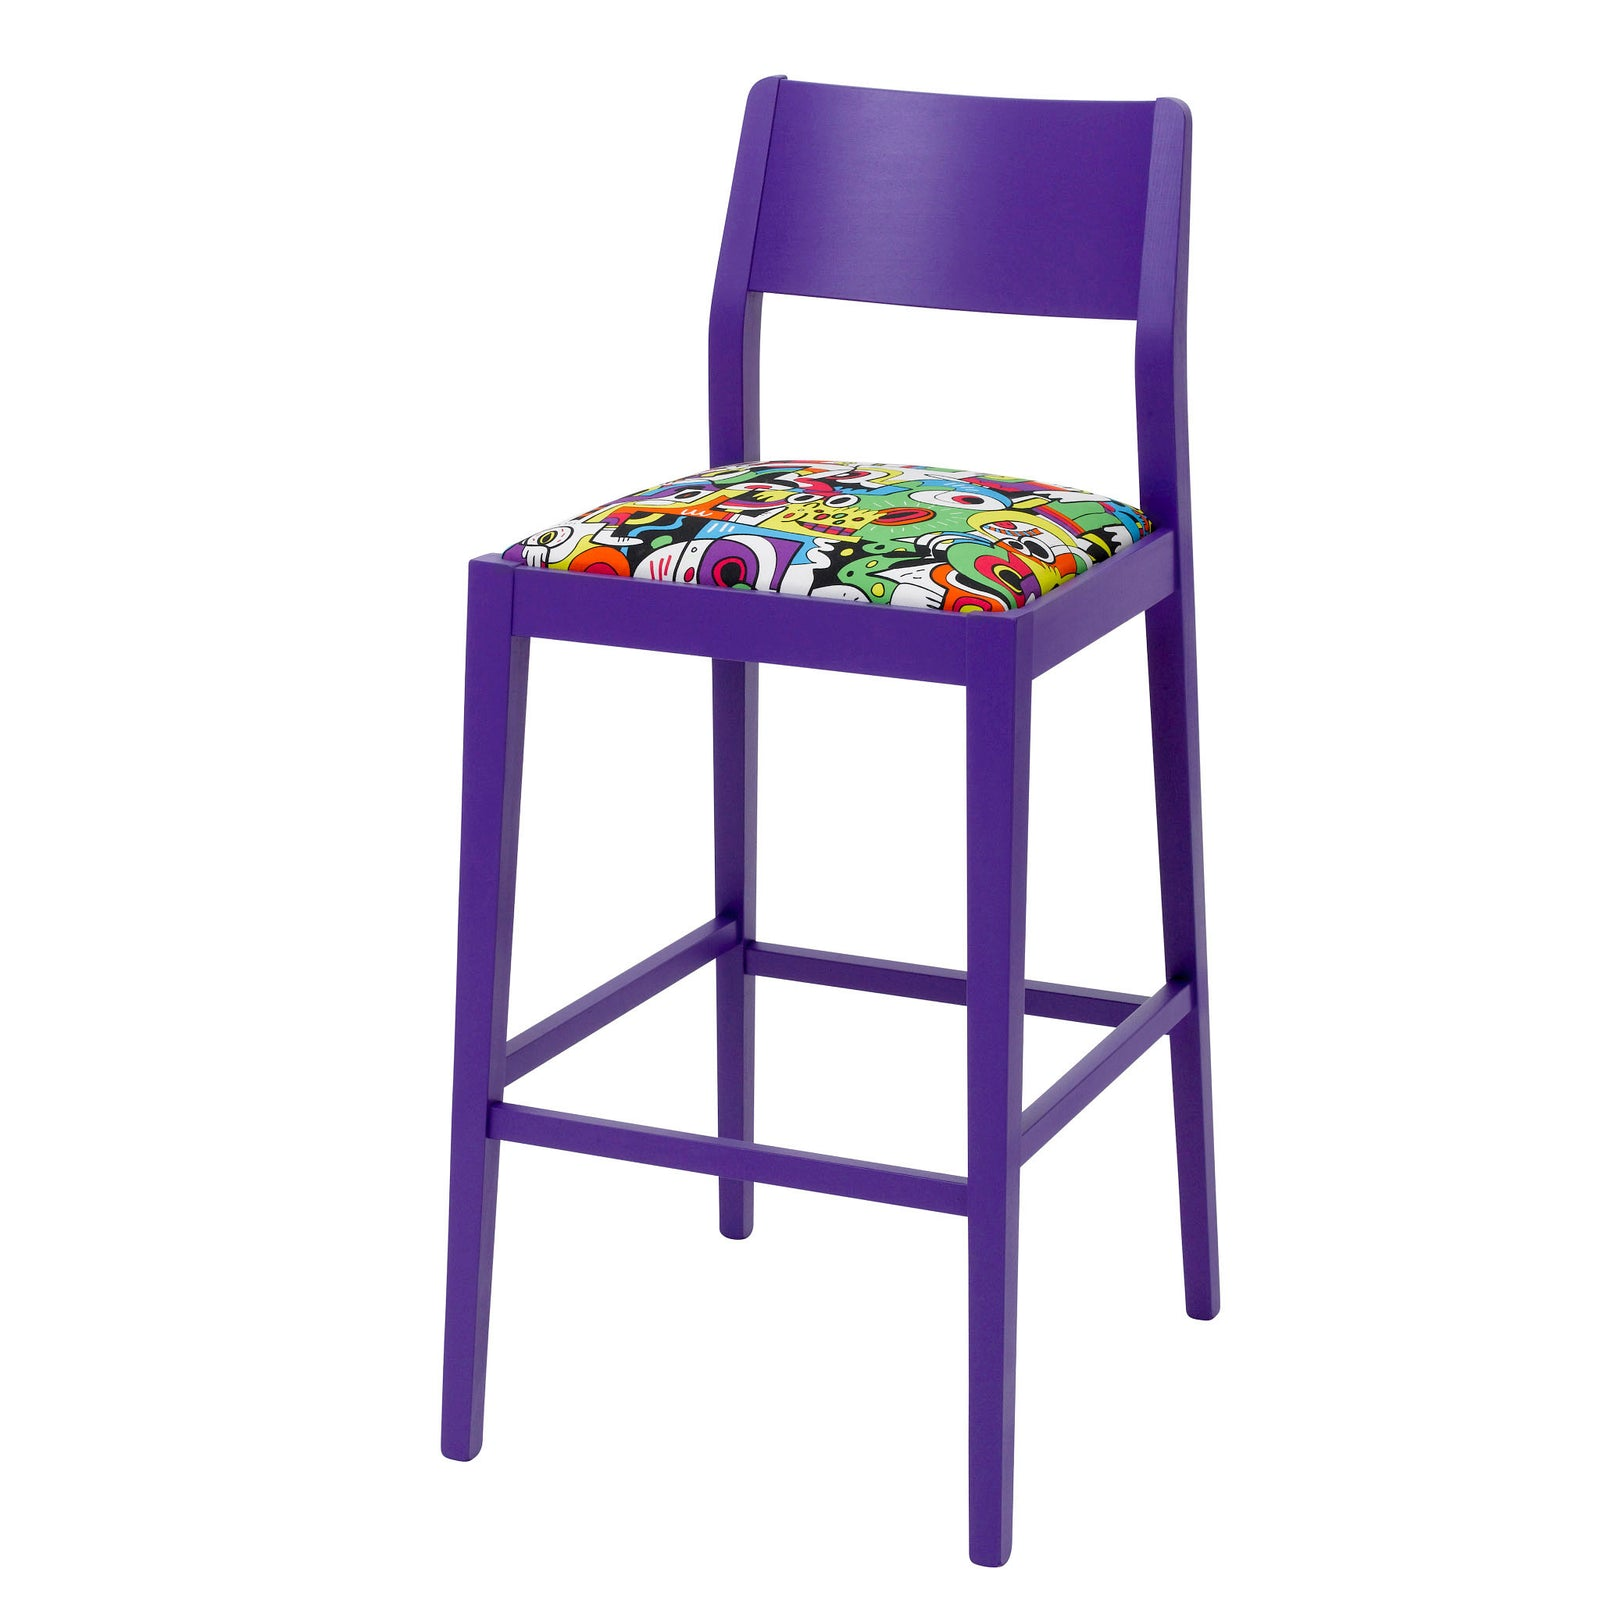 The James Bar Stool upholstered in Frooty Tooty Fabric finished in Purple.